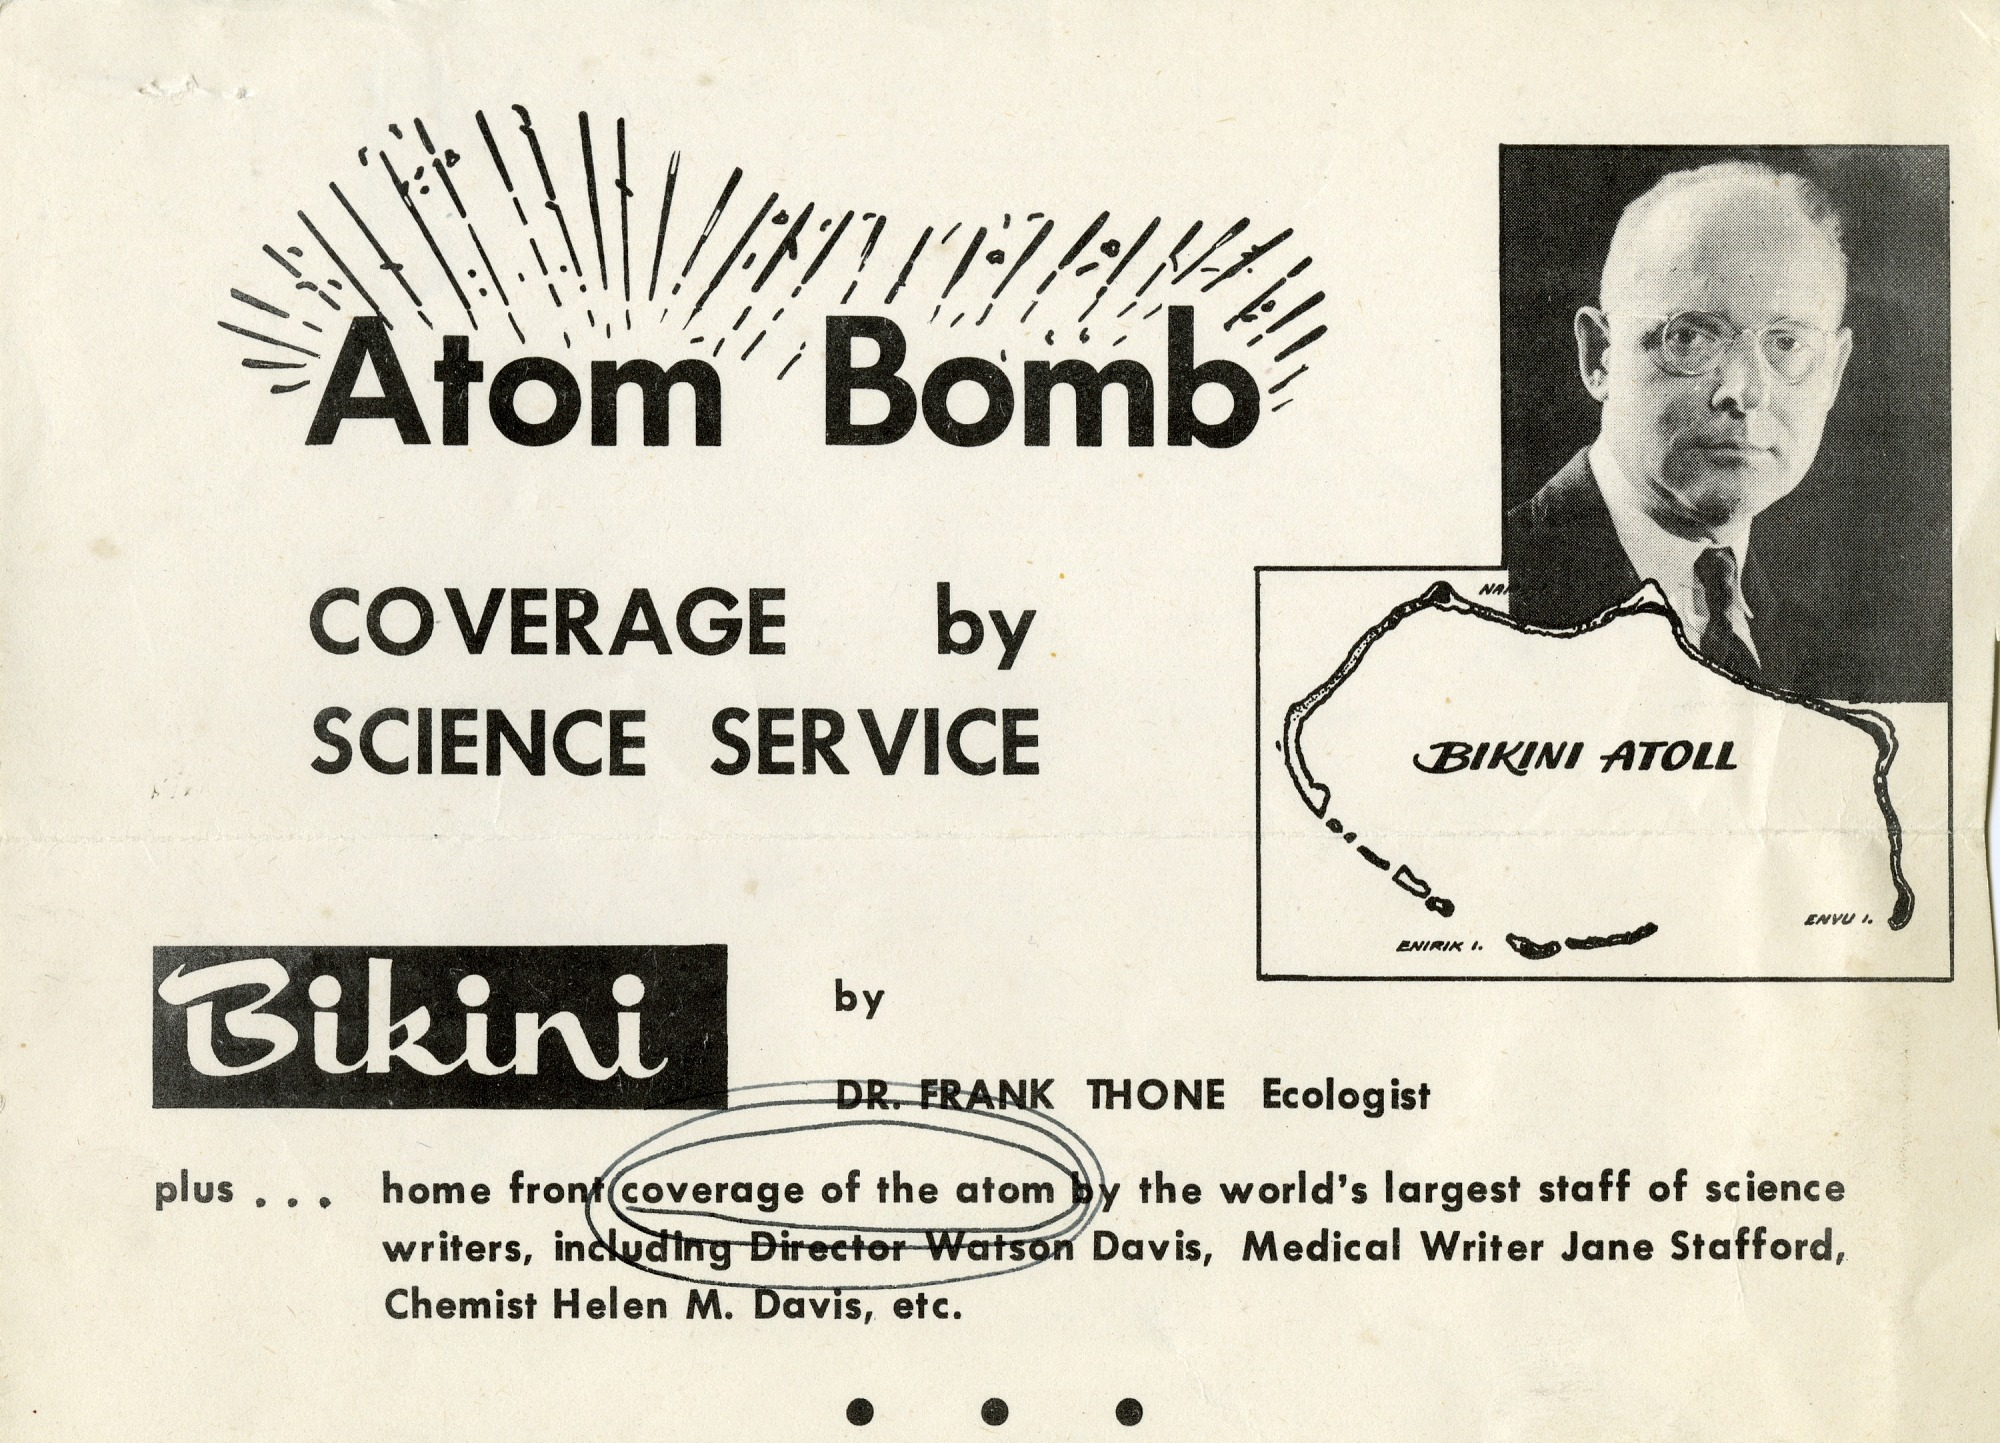 Preview of Atom Bomb Coverage by Science Service